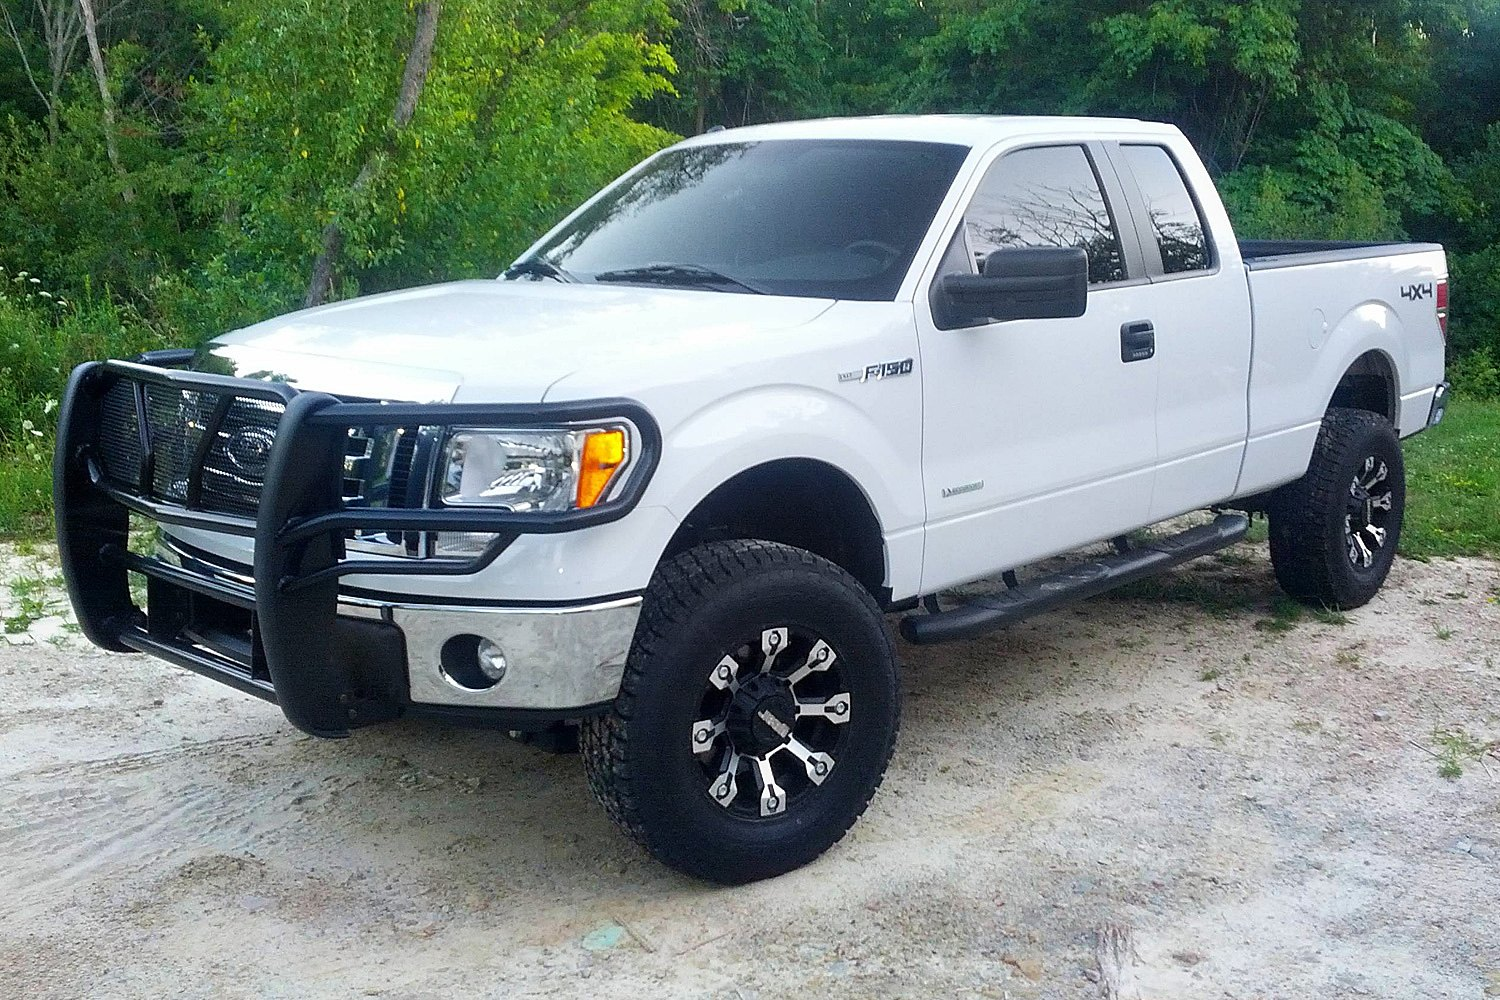 2014 f150 wiring diagram 2014 wiring diagrams 719mb backcountry black machined spokes ford f 150